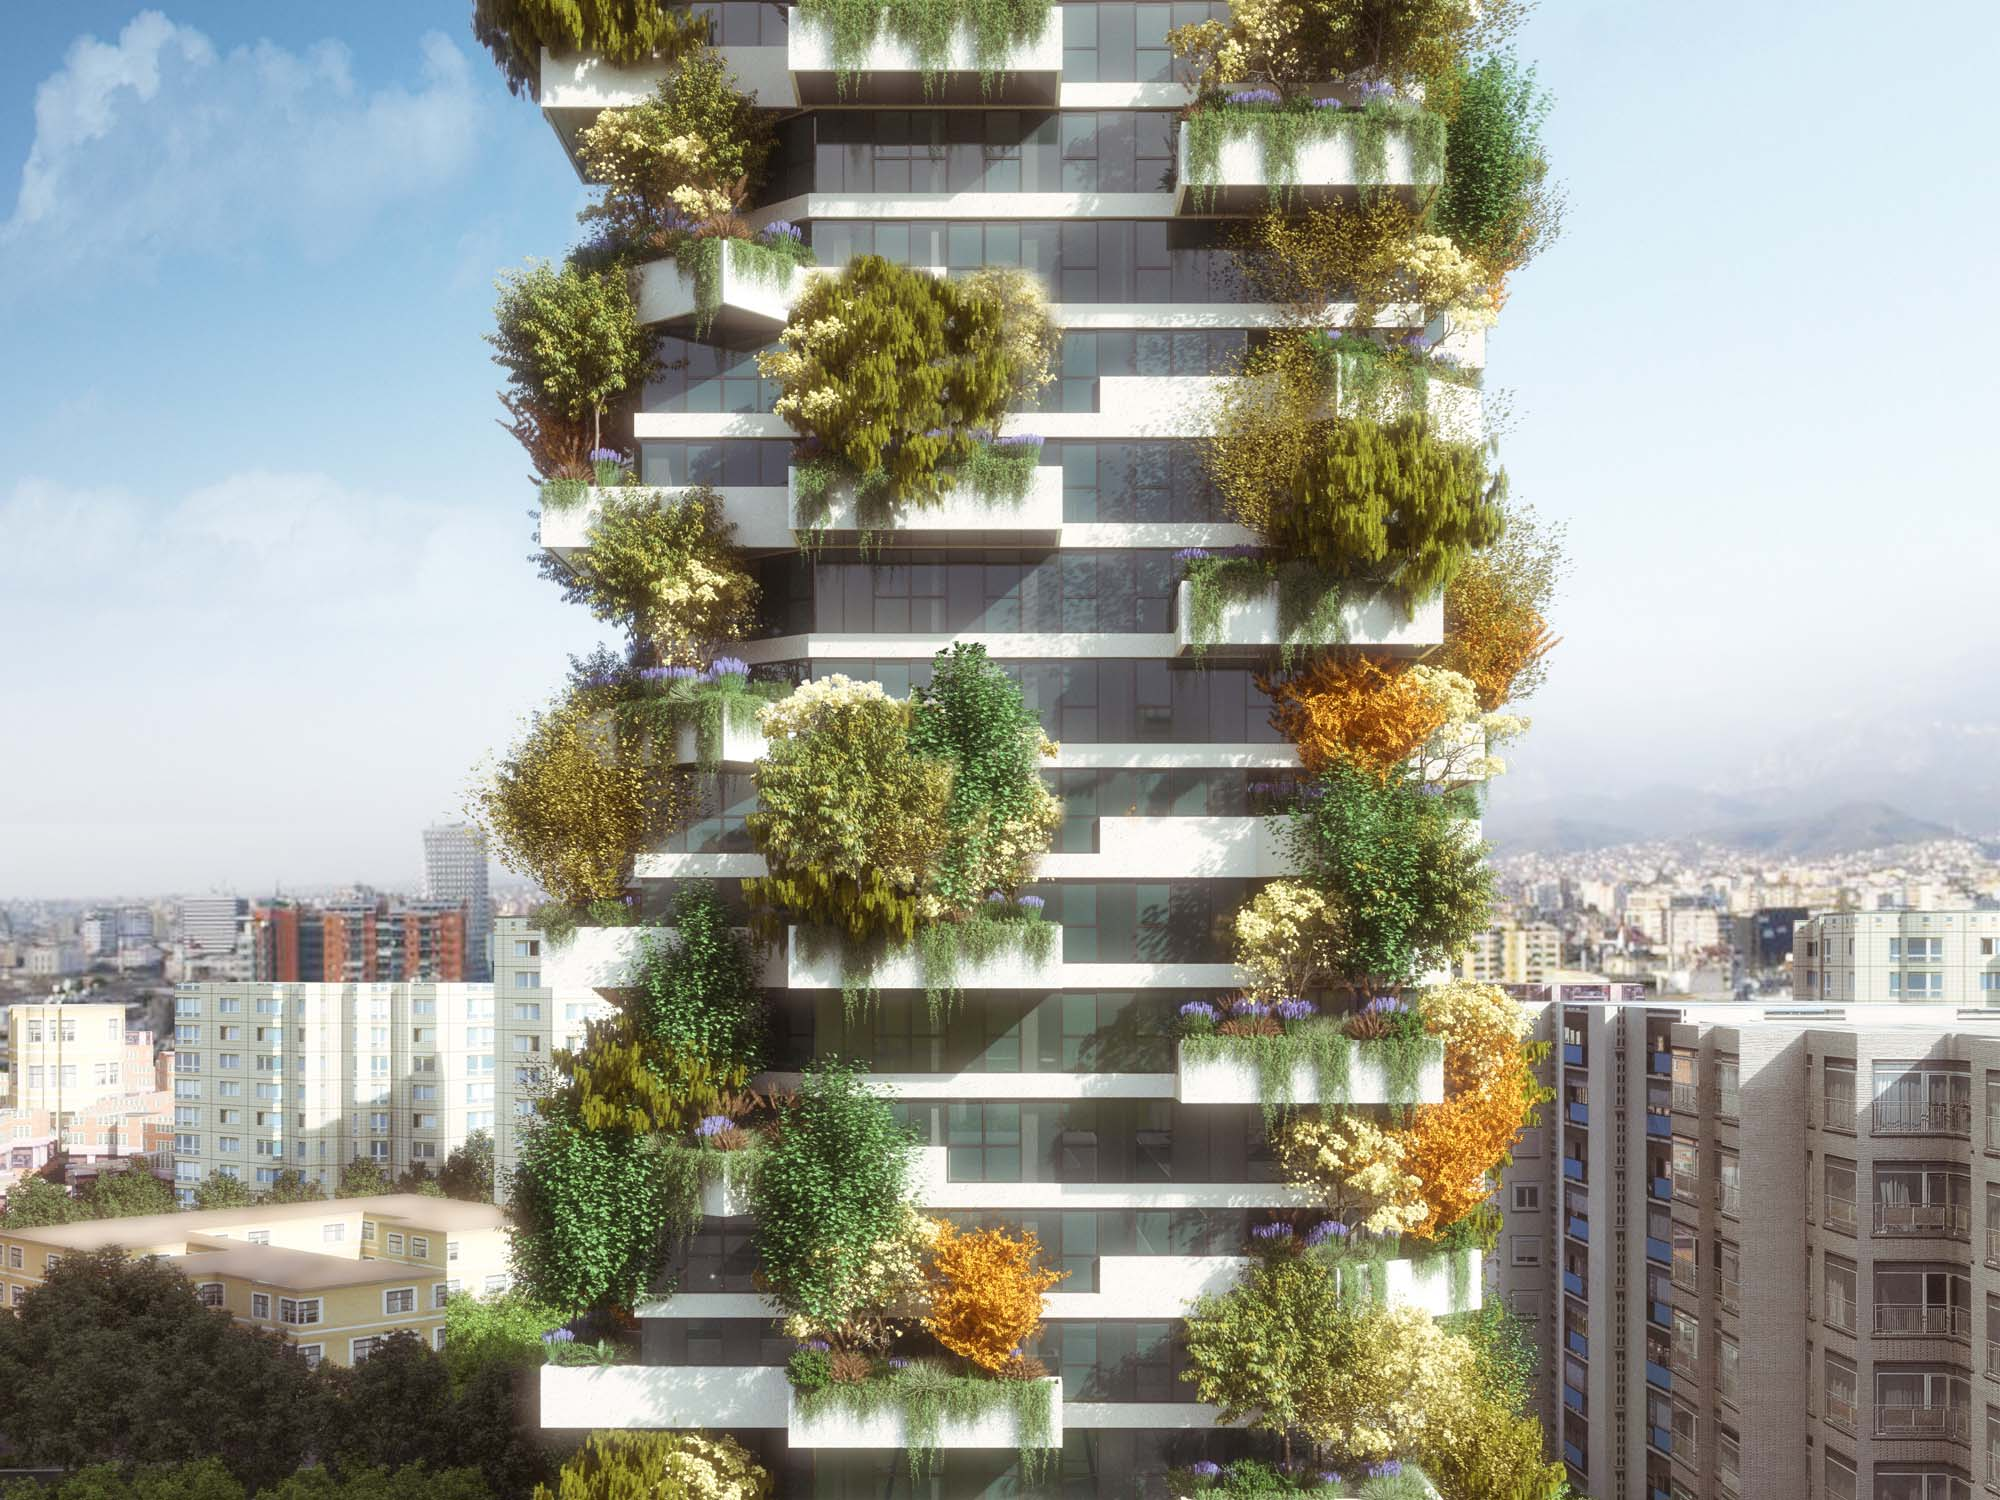 Caption: Tirana Vertical Forest designed by Stefano Boeri